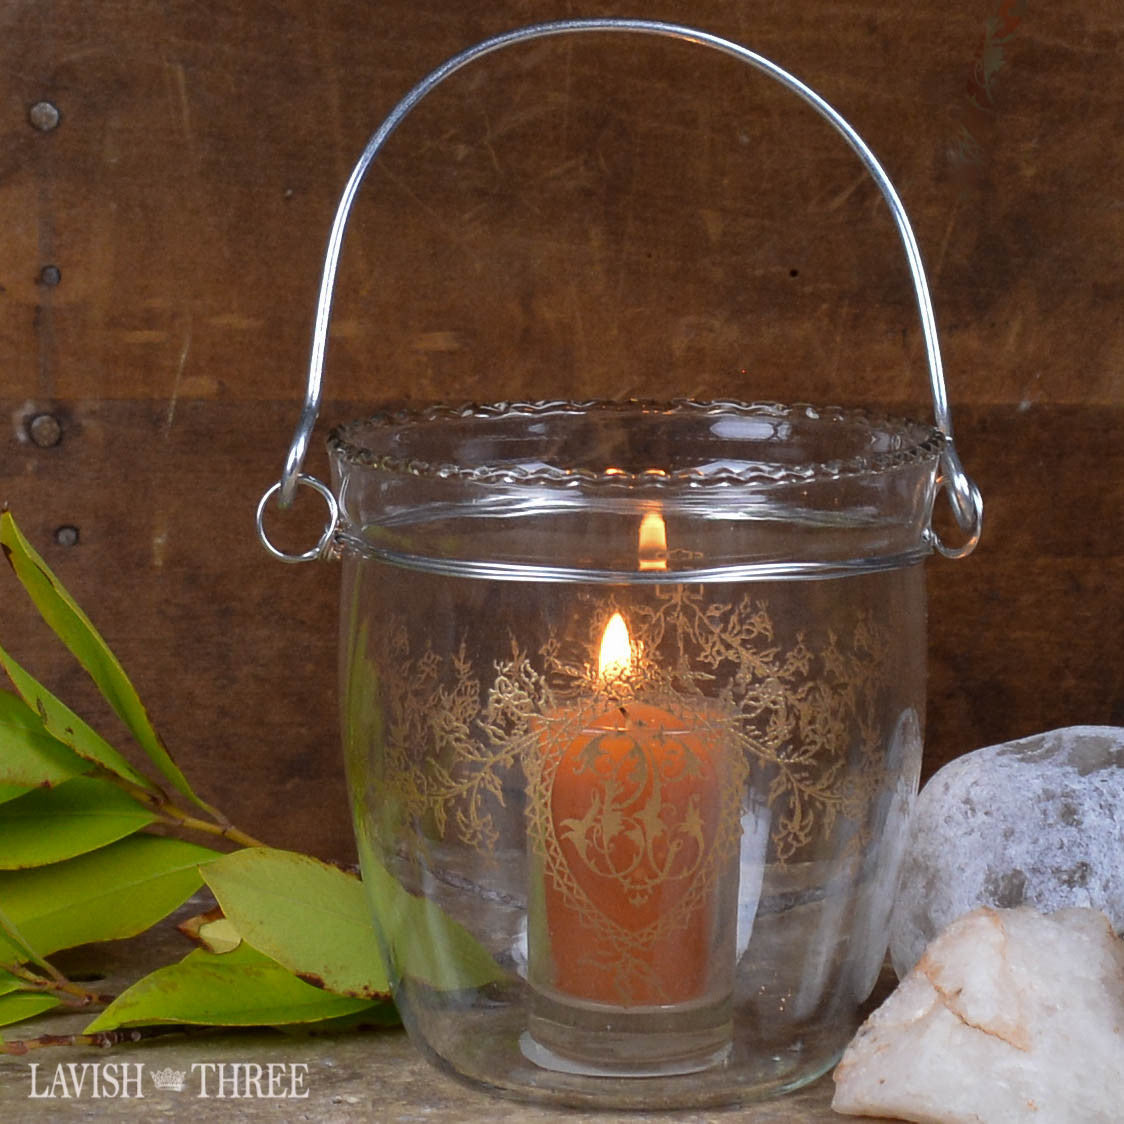 Vintage morrocan boho hanging etched glass votive candle holder lantern with handle